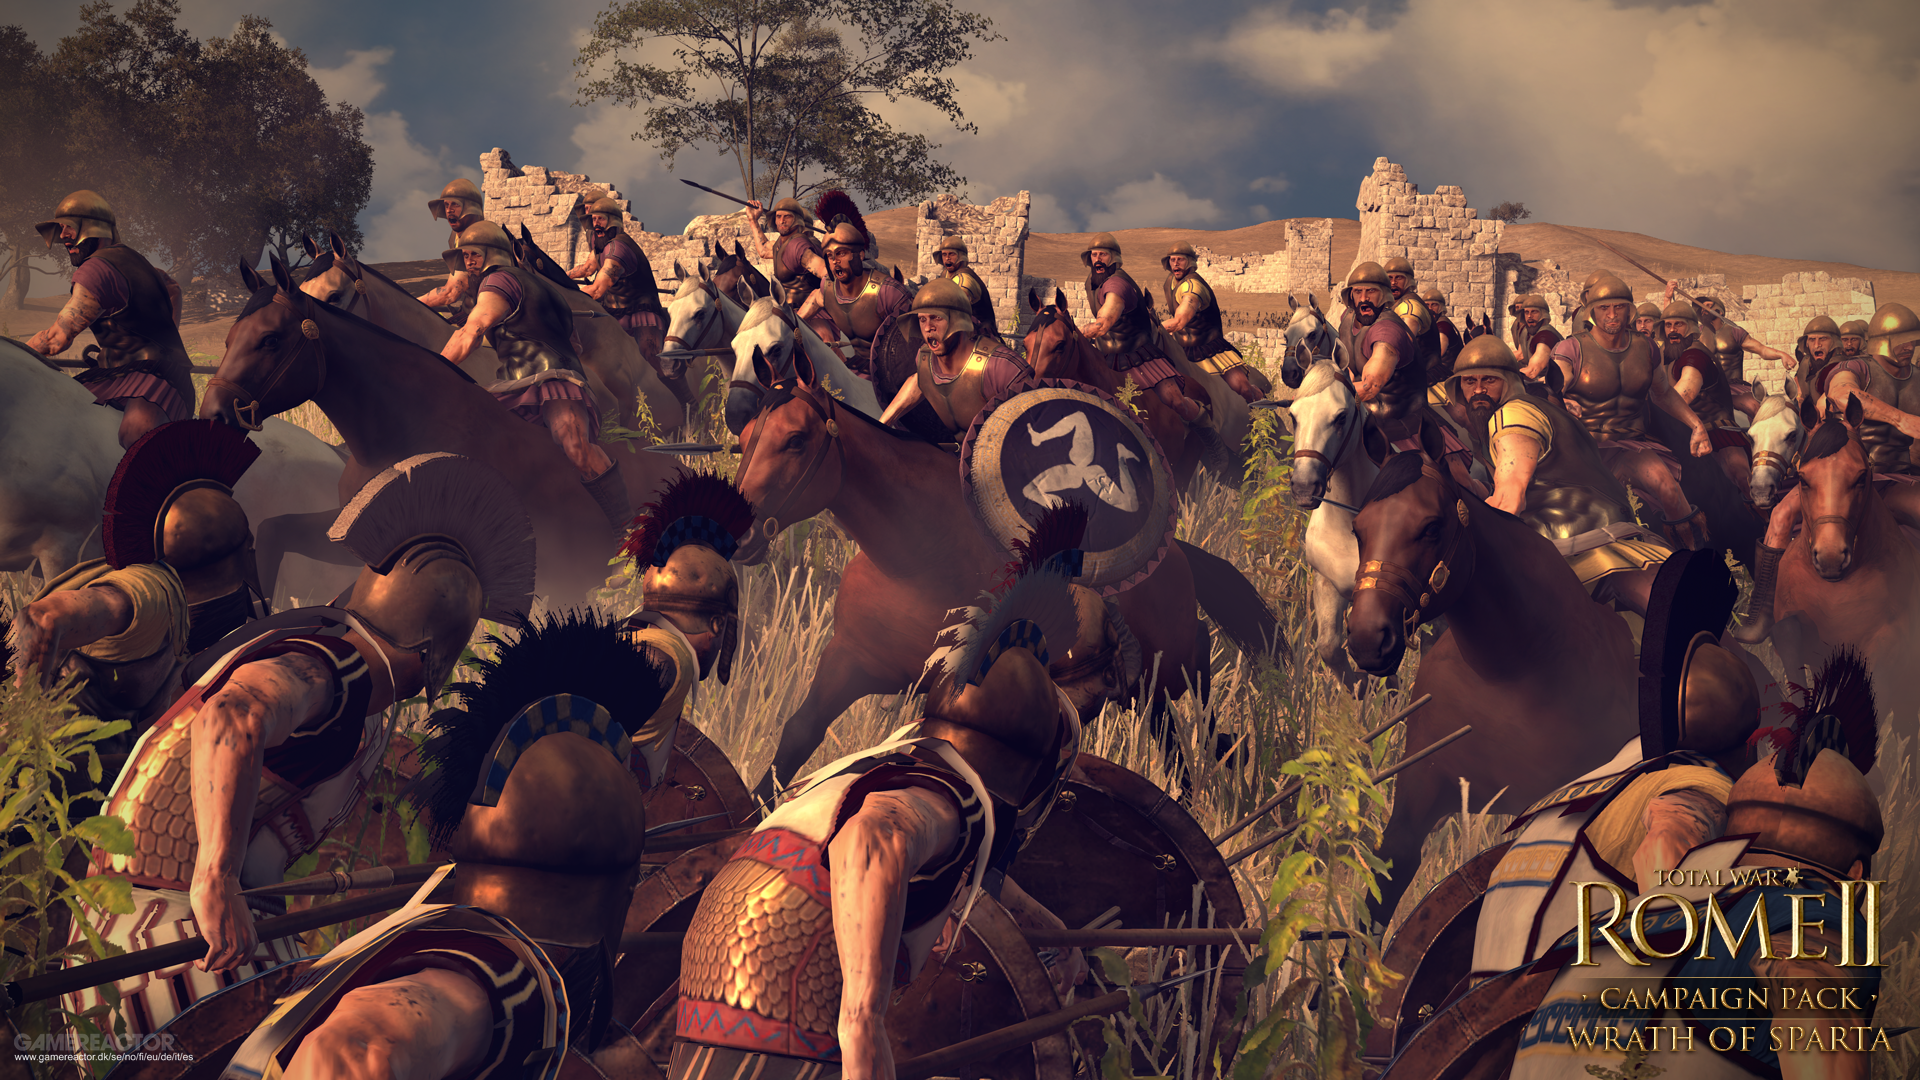 Pictures Of Wrath Of Sparta Dlc Hitting Total War Rome Ii 6 6